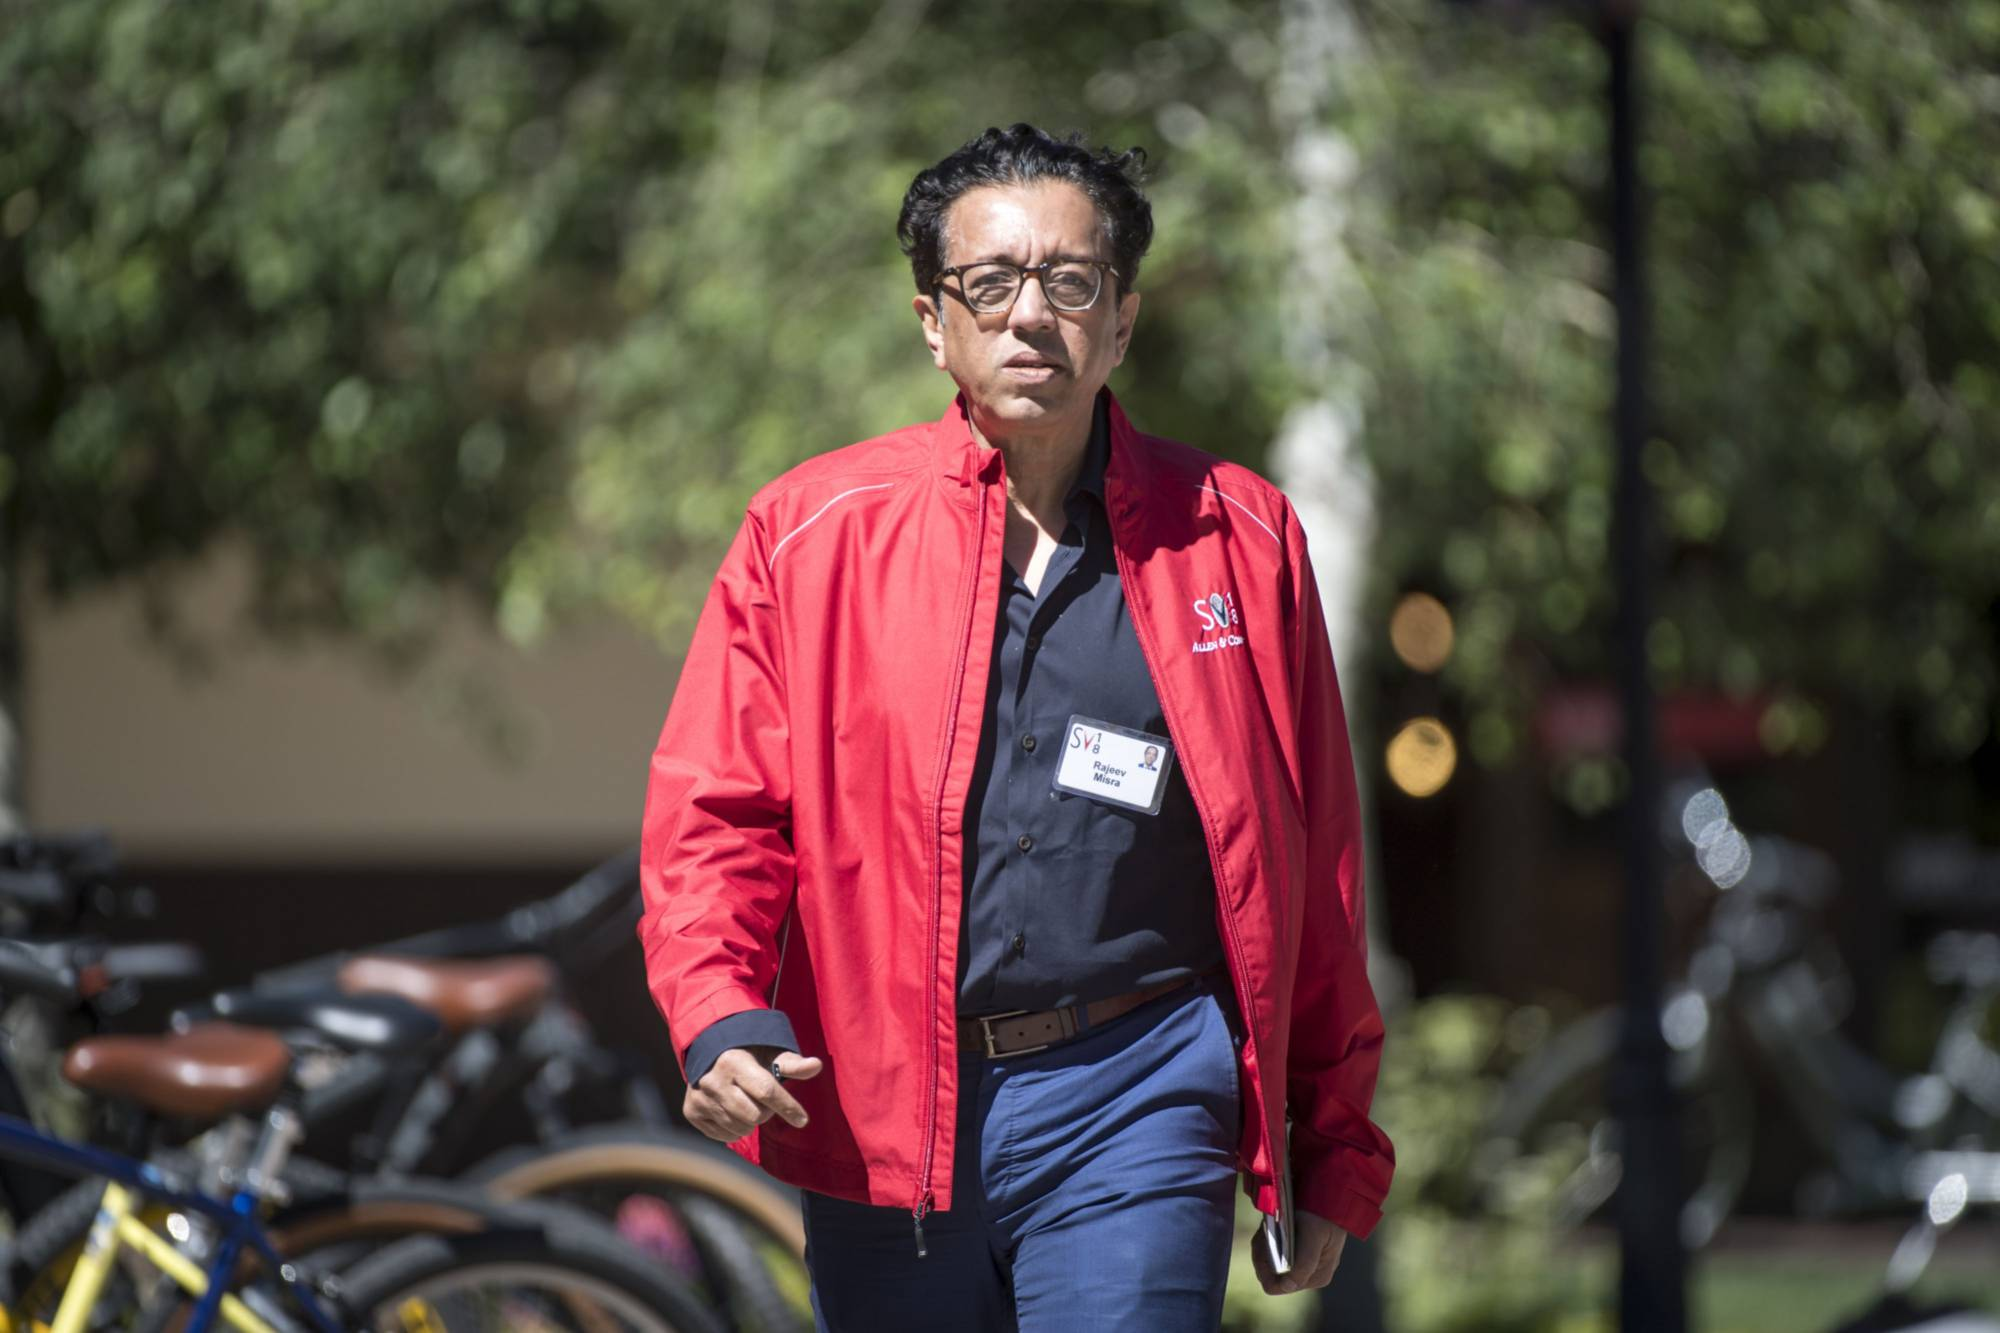 Rajeev Misra, chief executive officer of investment advisors for SoftBank Corp., walks in Sun Valley, Idaho, in July 2018. | BLOOMBERG